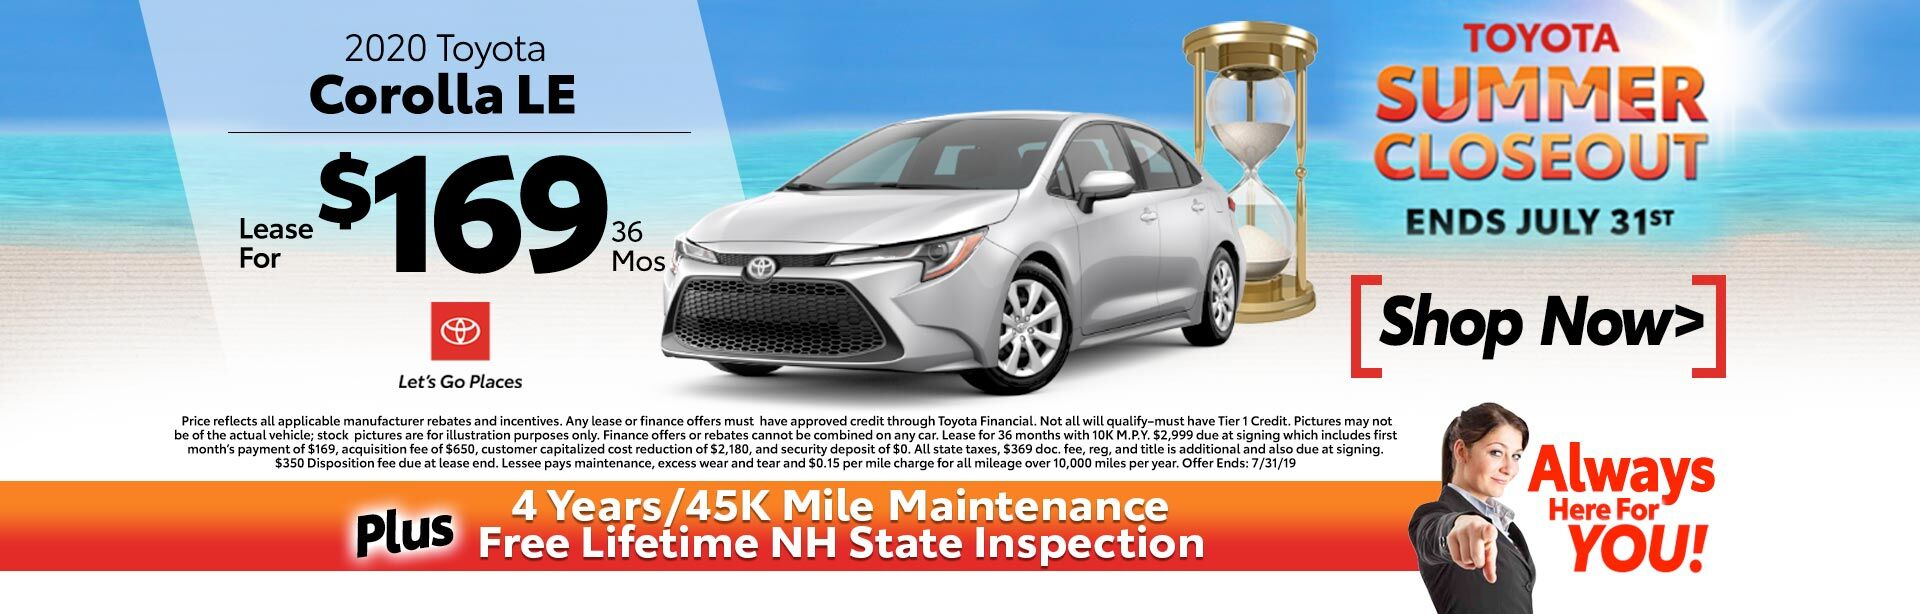 2020 Corolla Special Lease